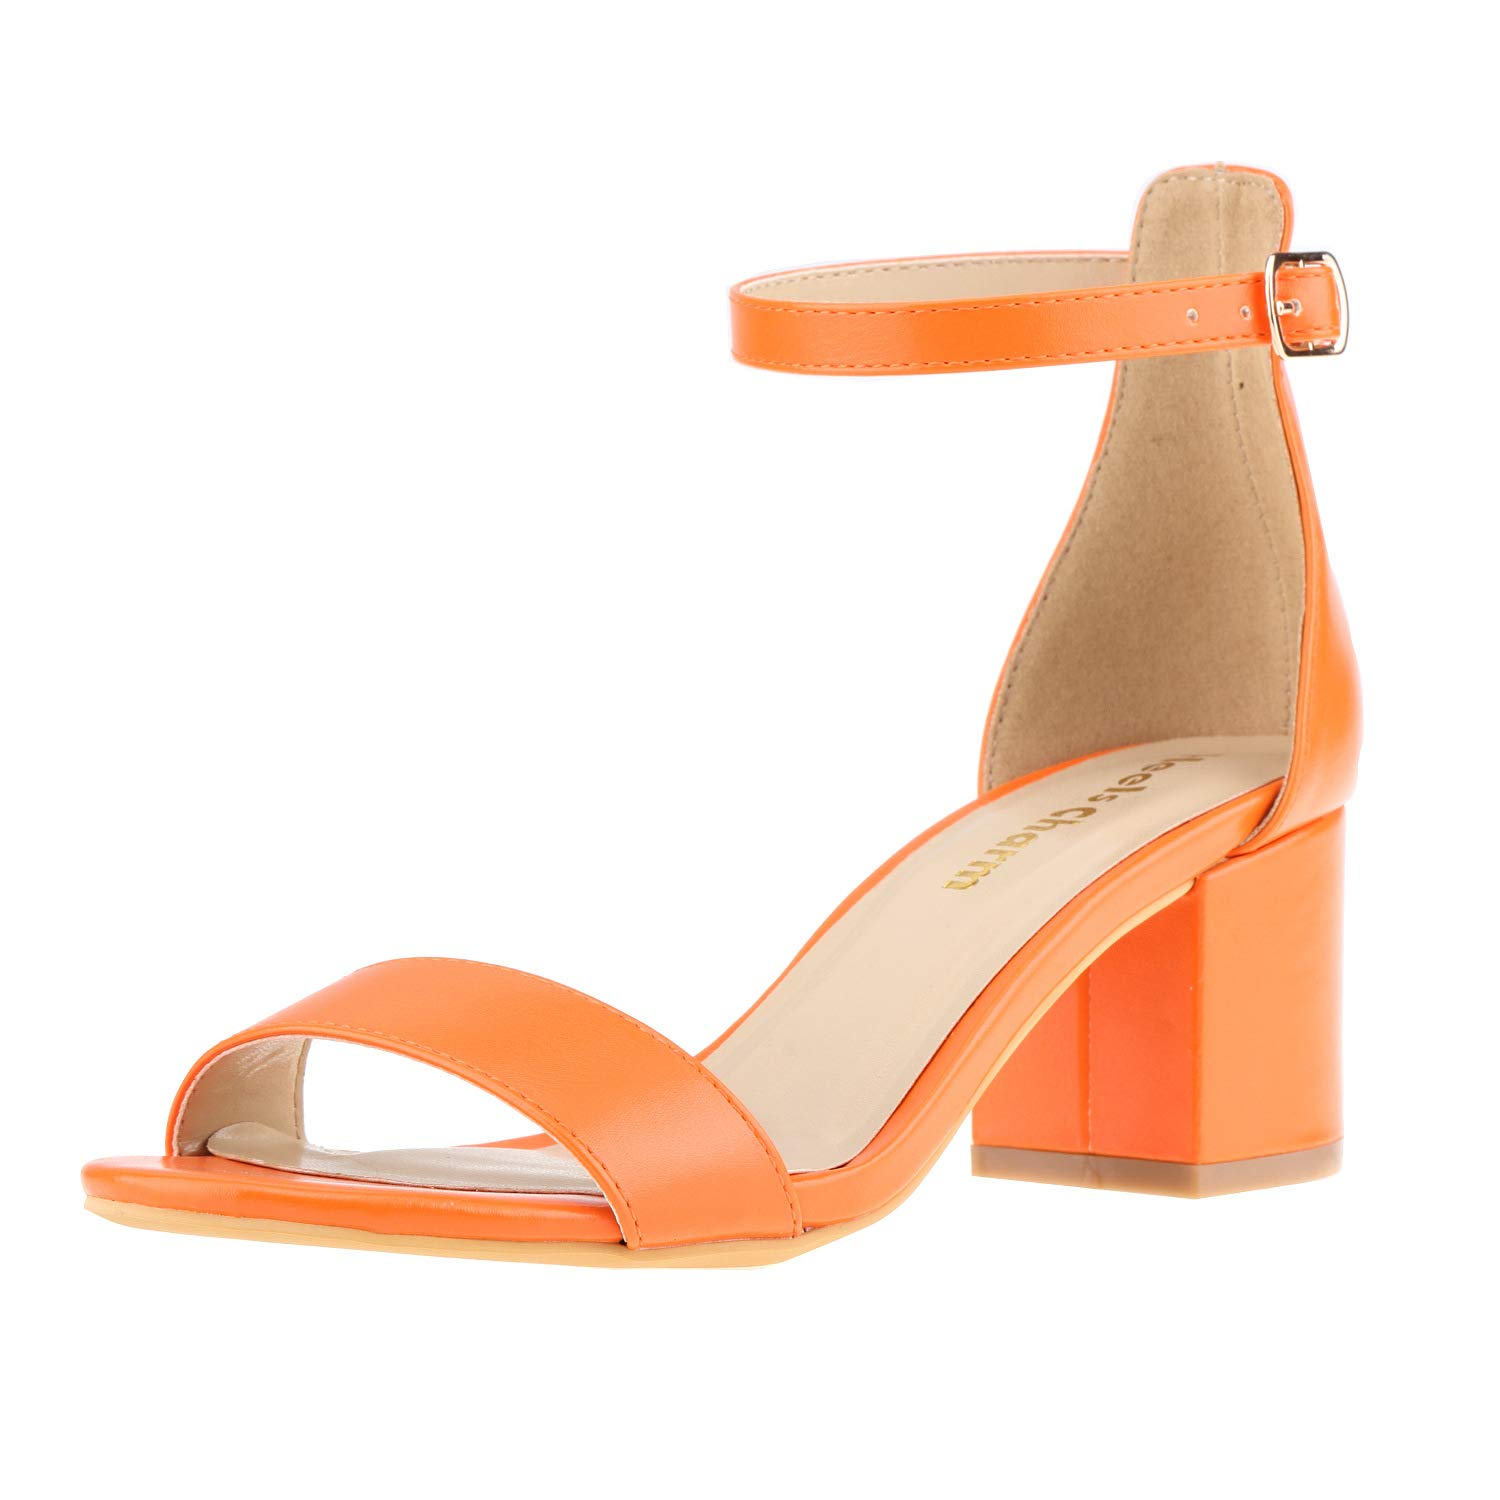 orange Women's Strappy Chunky Block Low Heeled Sandals 2 Inch Open Toe Ankle Strap High Heel Dress Sandals Daily Work Party shoes